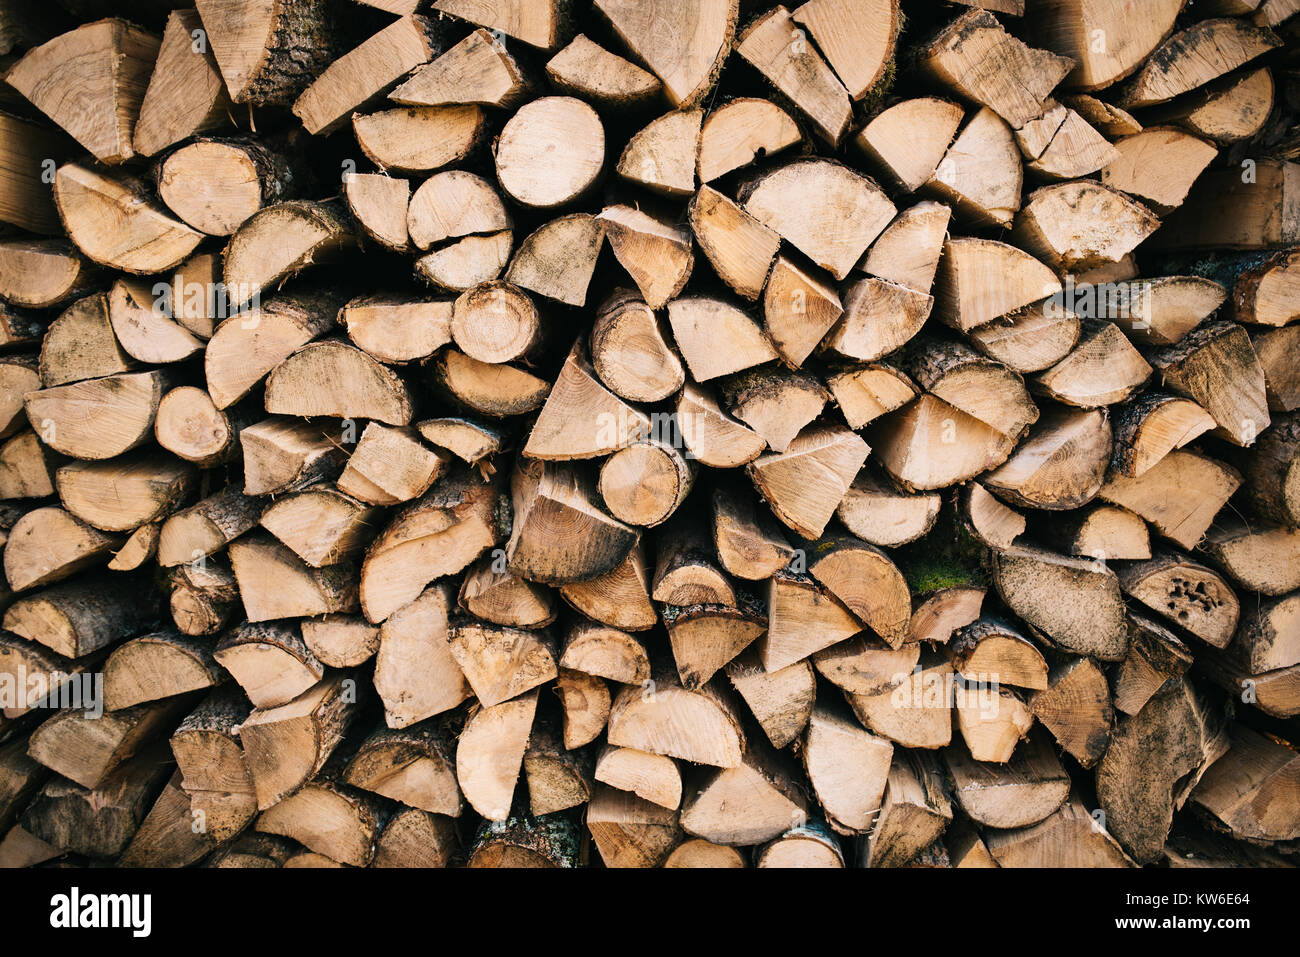 Stacked firewood background - Stock Image